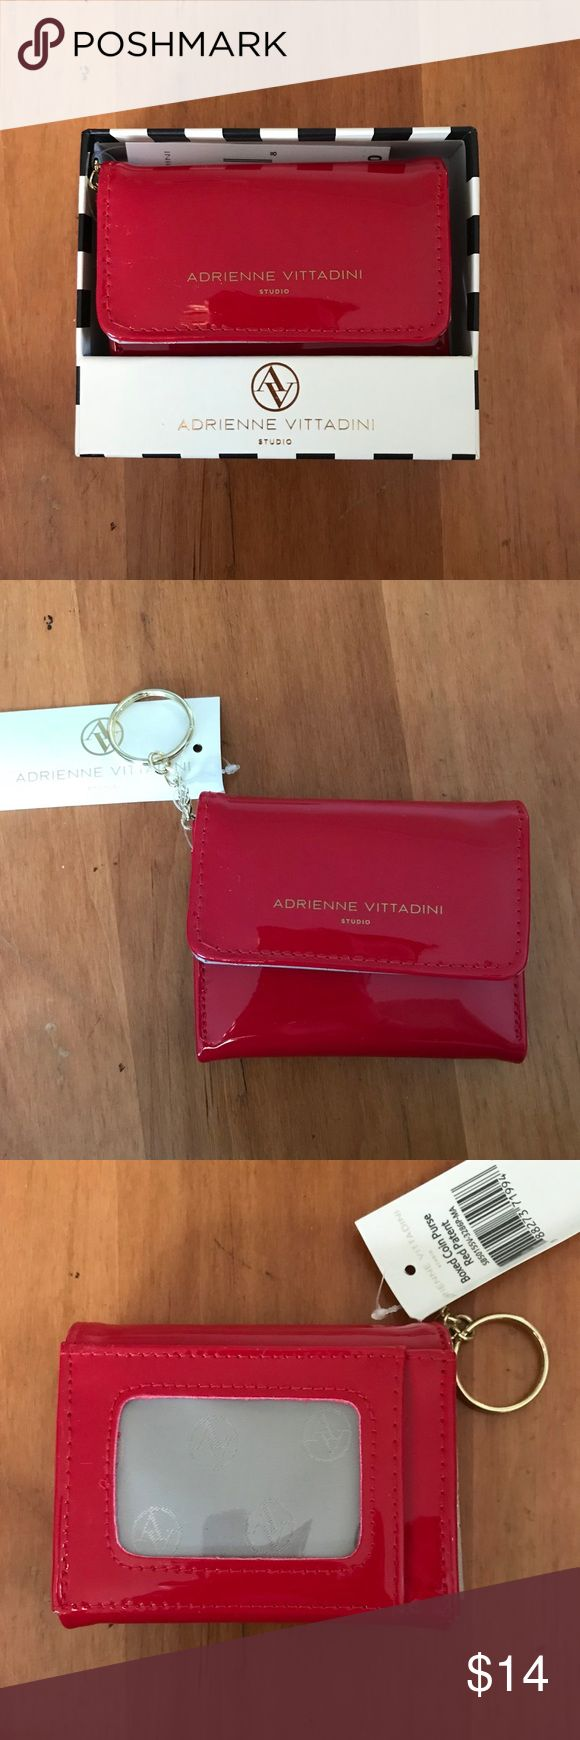 Adrienne Vittadini Apple red mini wallet Adrienne Vittadini Apple red mini wallet NWT. Brand new beautiful wallet let me know if you're interested. Comes with tags on and box. Makes for a great gift! Adrienne Vittadini Bags Wallets